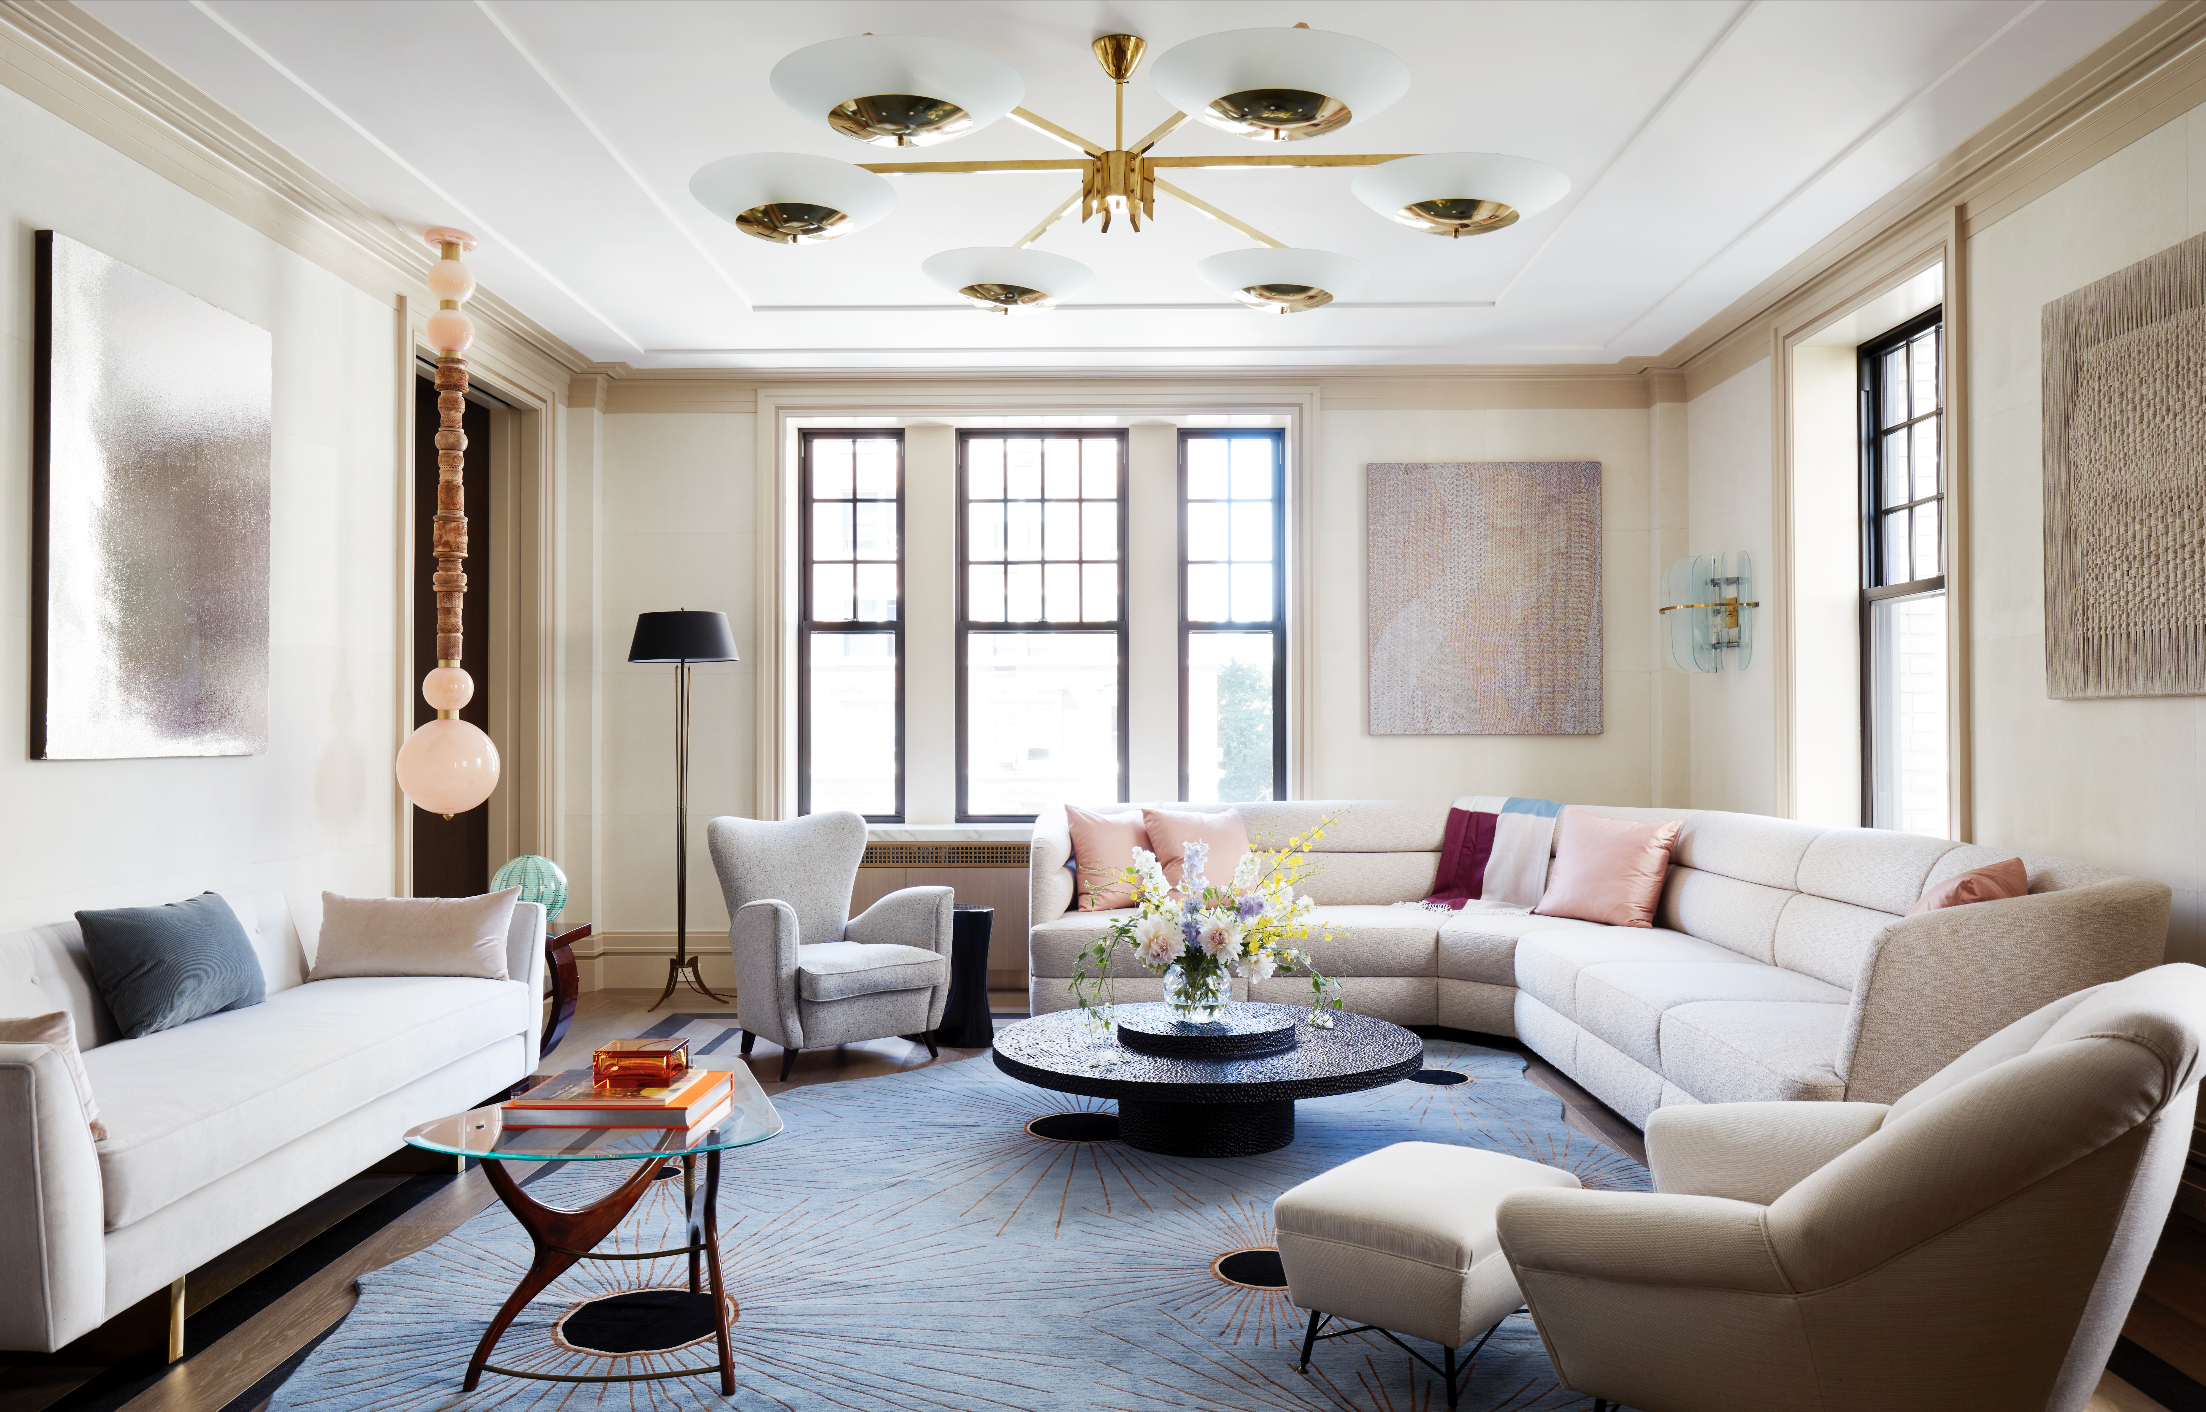 This Home Features Just the Right Dose of Art Deco Glam